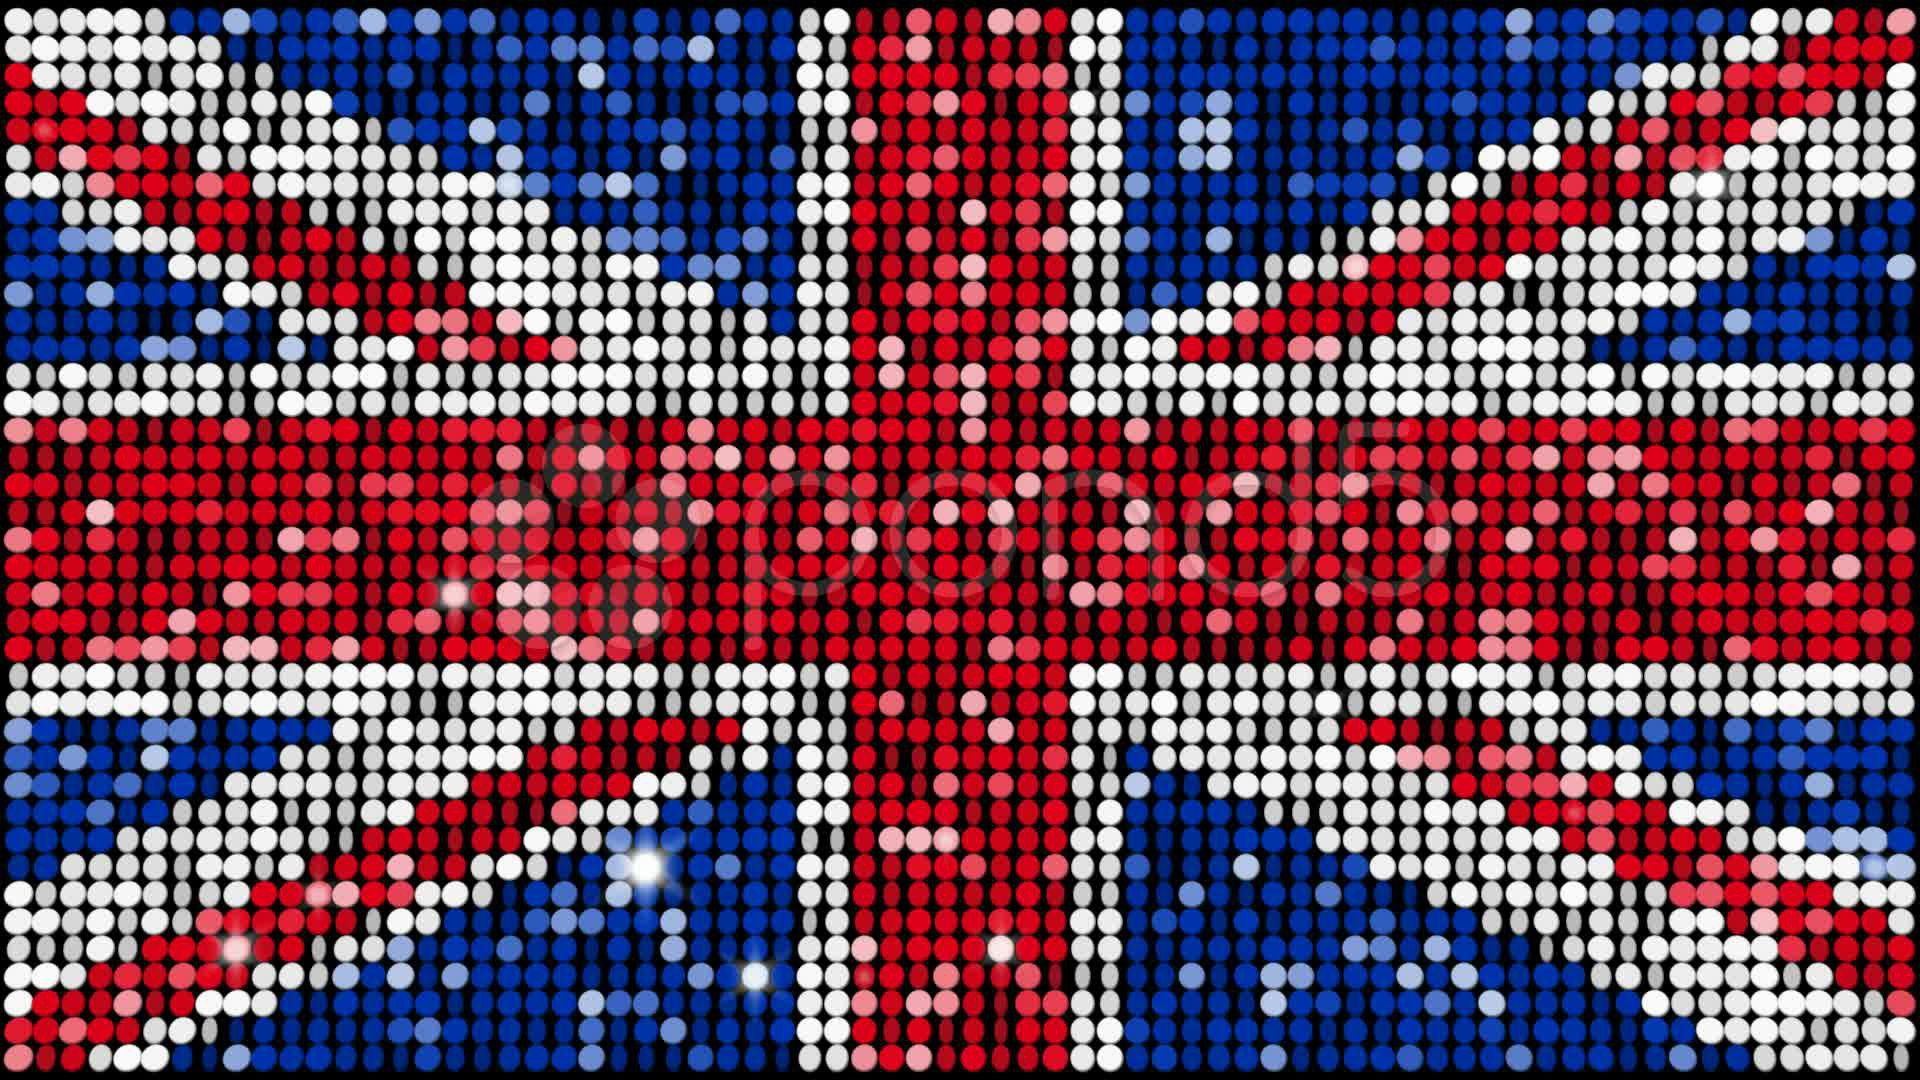 British Flag Computer Wallpaper